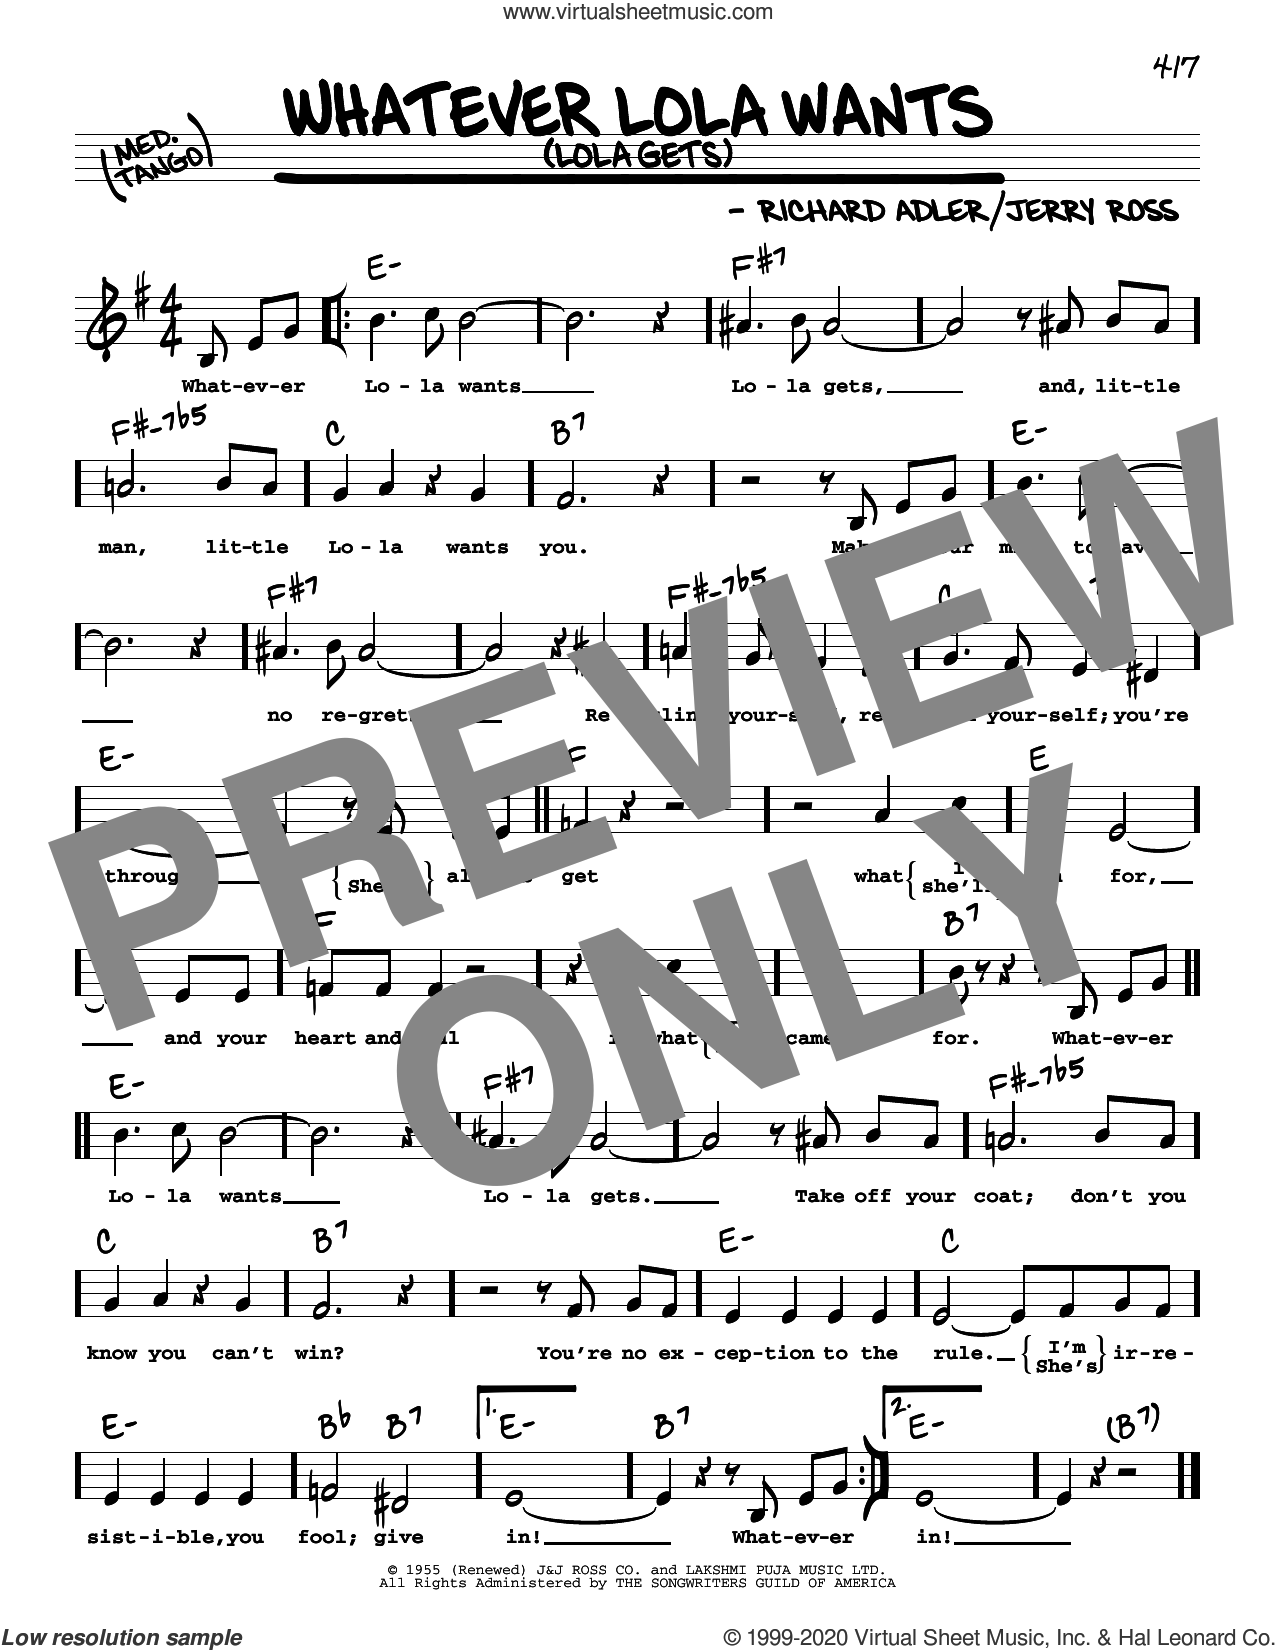 Whatever Lola Wants (Lola Gets) (High Voice) sheet music for voice and other instruments (high voice) by Richard Adler, Adler & Ross and Jerry Ross, intermediate skill level